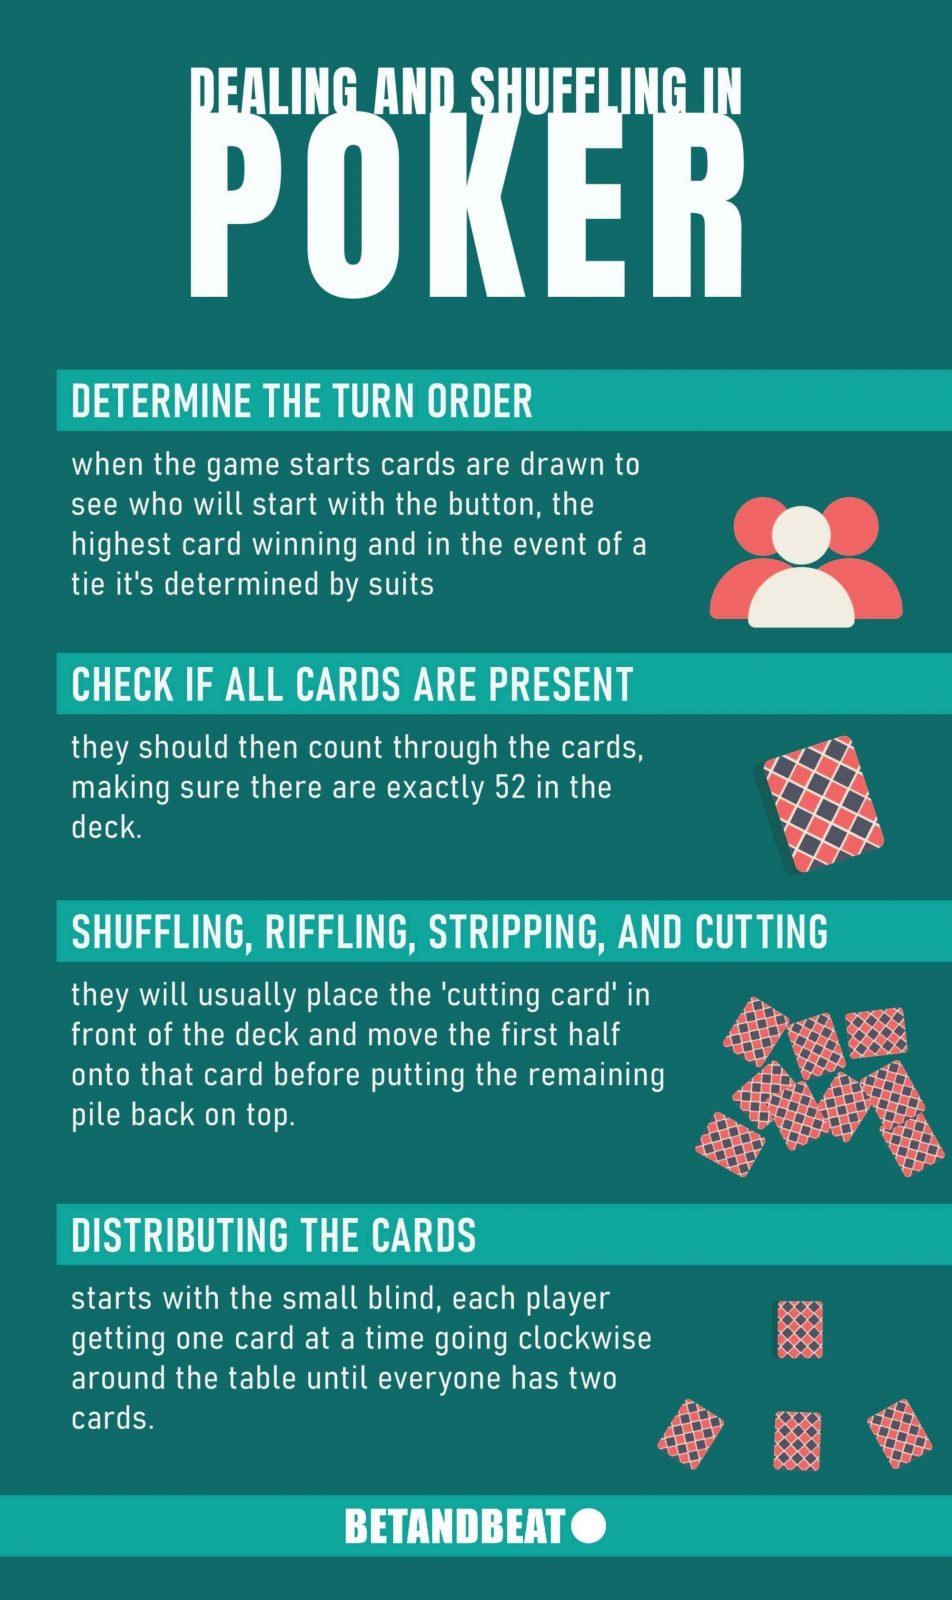 Phases of card shuffling and dealer in Poker.